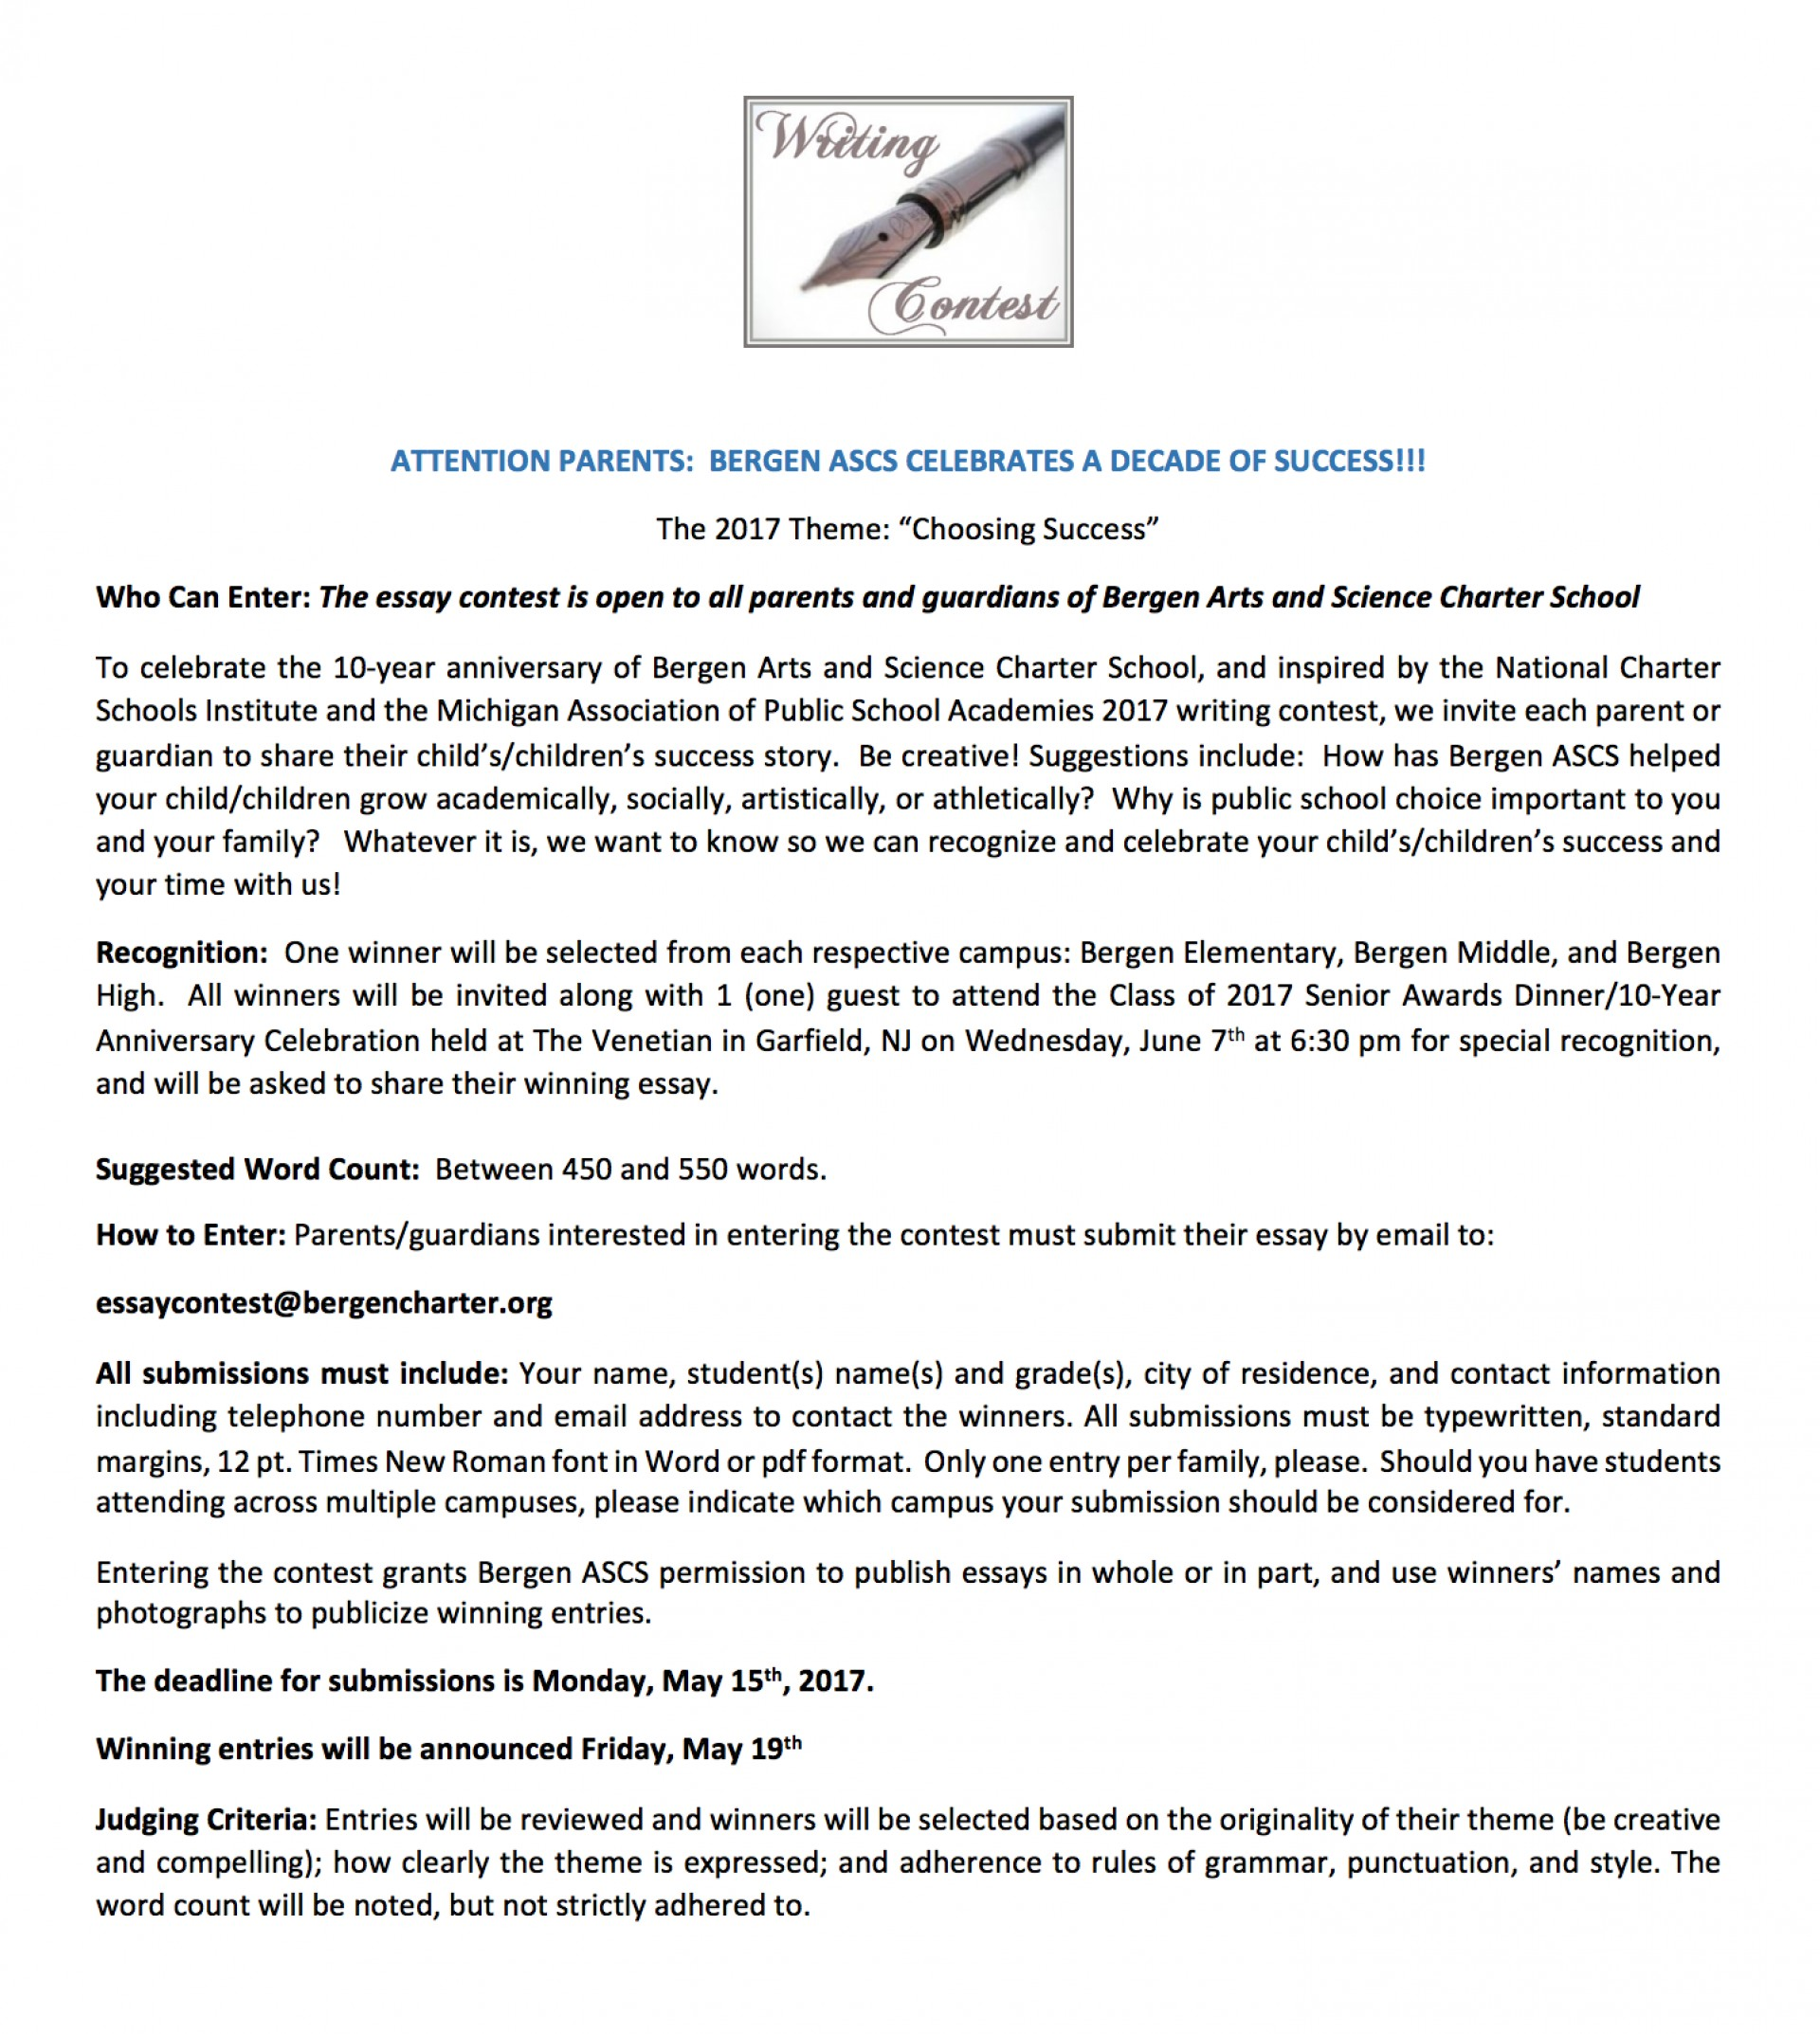 002 Essay Example Contest Middle School Creative Writing Competitions For Students Custom Contests High Screen Shot April International Breathtaking Competition Curriculum Online 1920